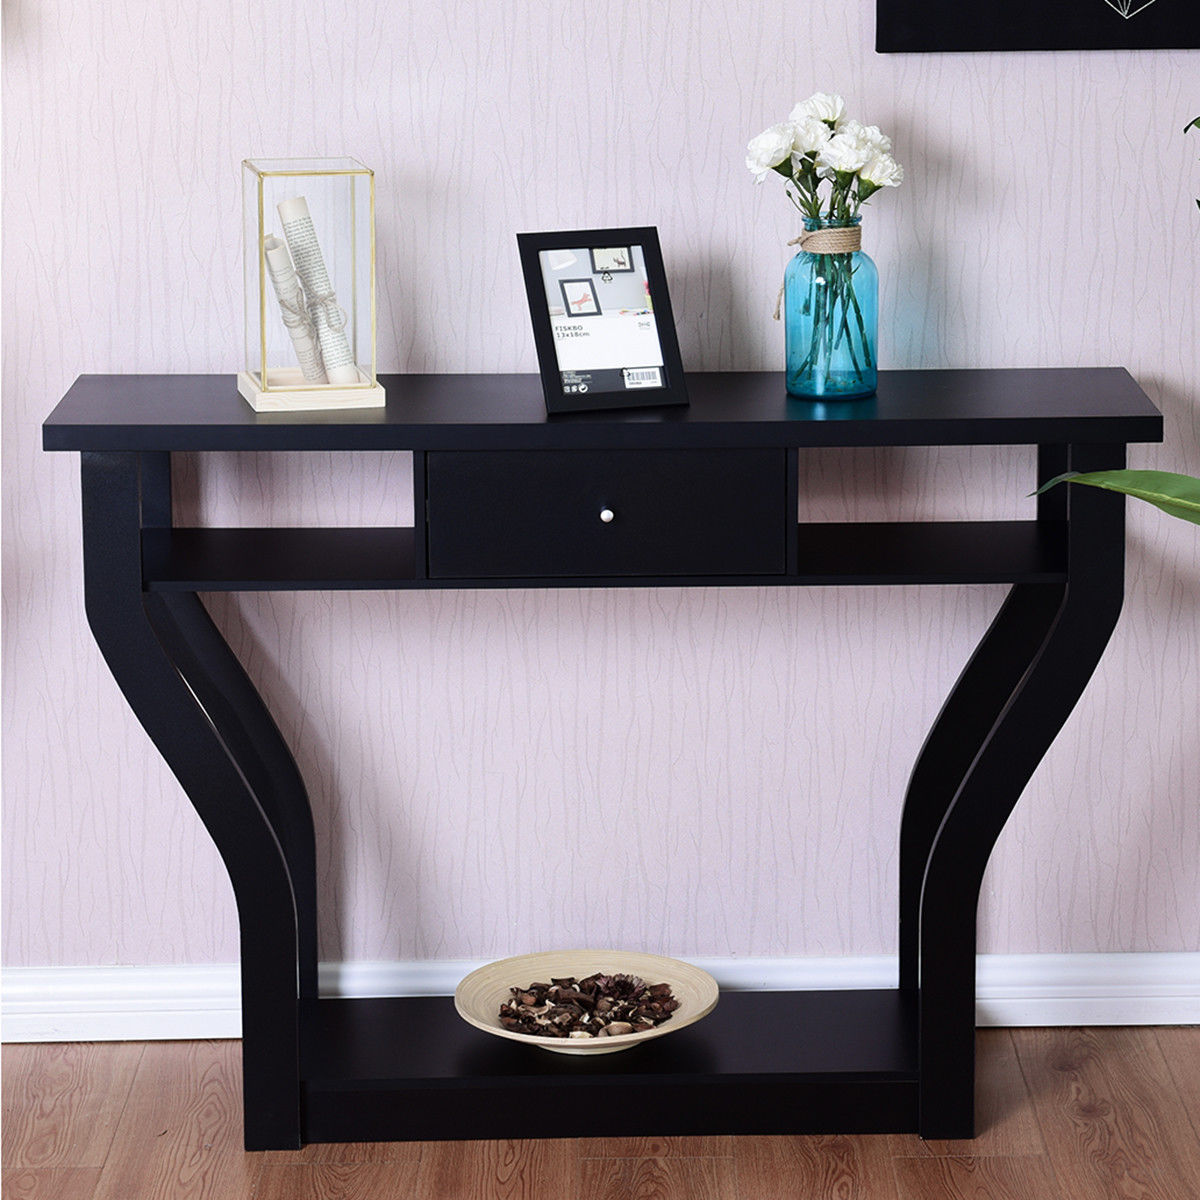 Giantex Accent Console Table Modern Sofa Entryway Hallway Wood Display Desk With Drawer Living Room Furniture HW60291